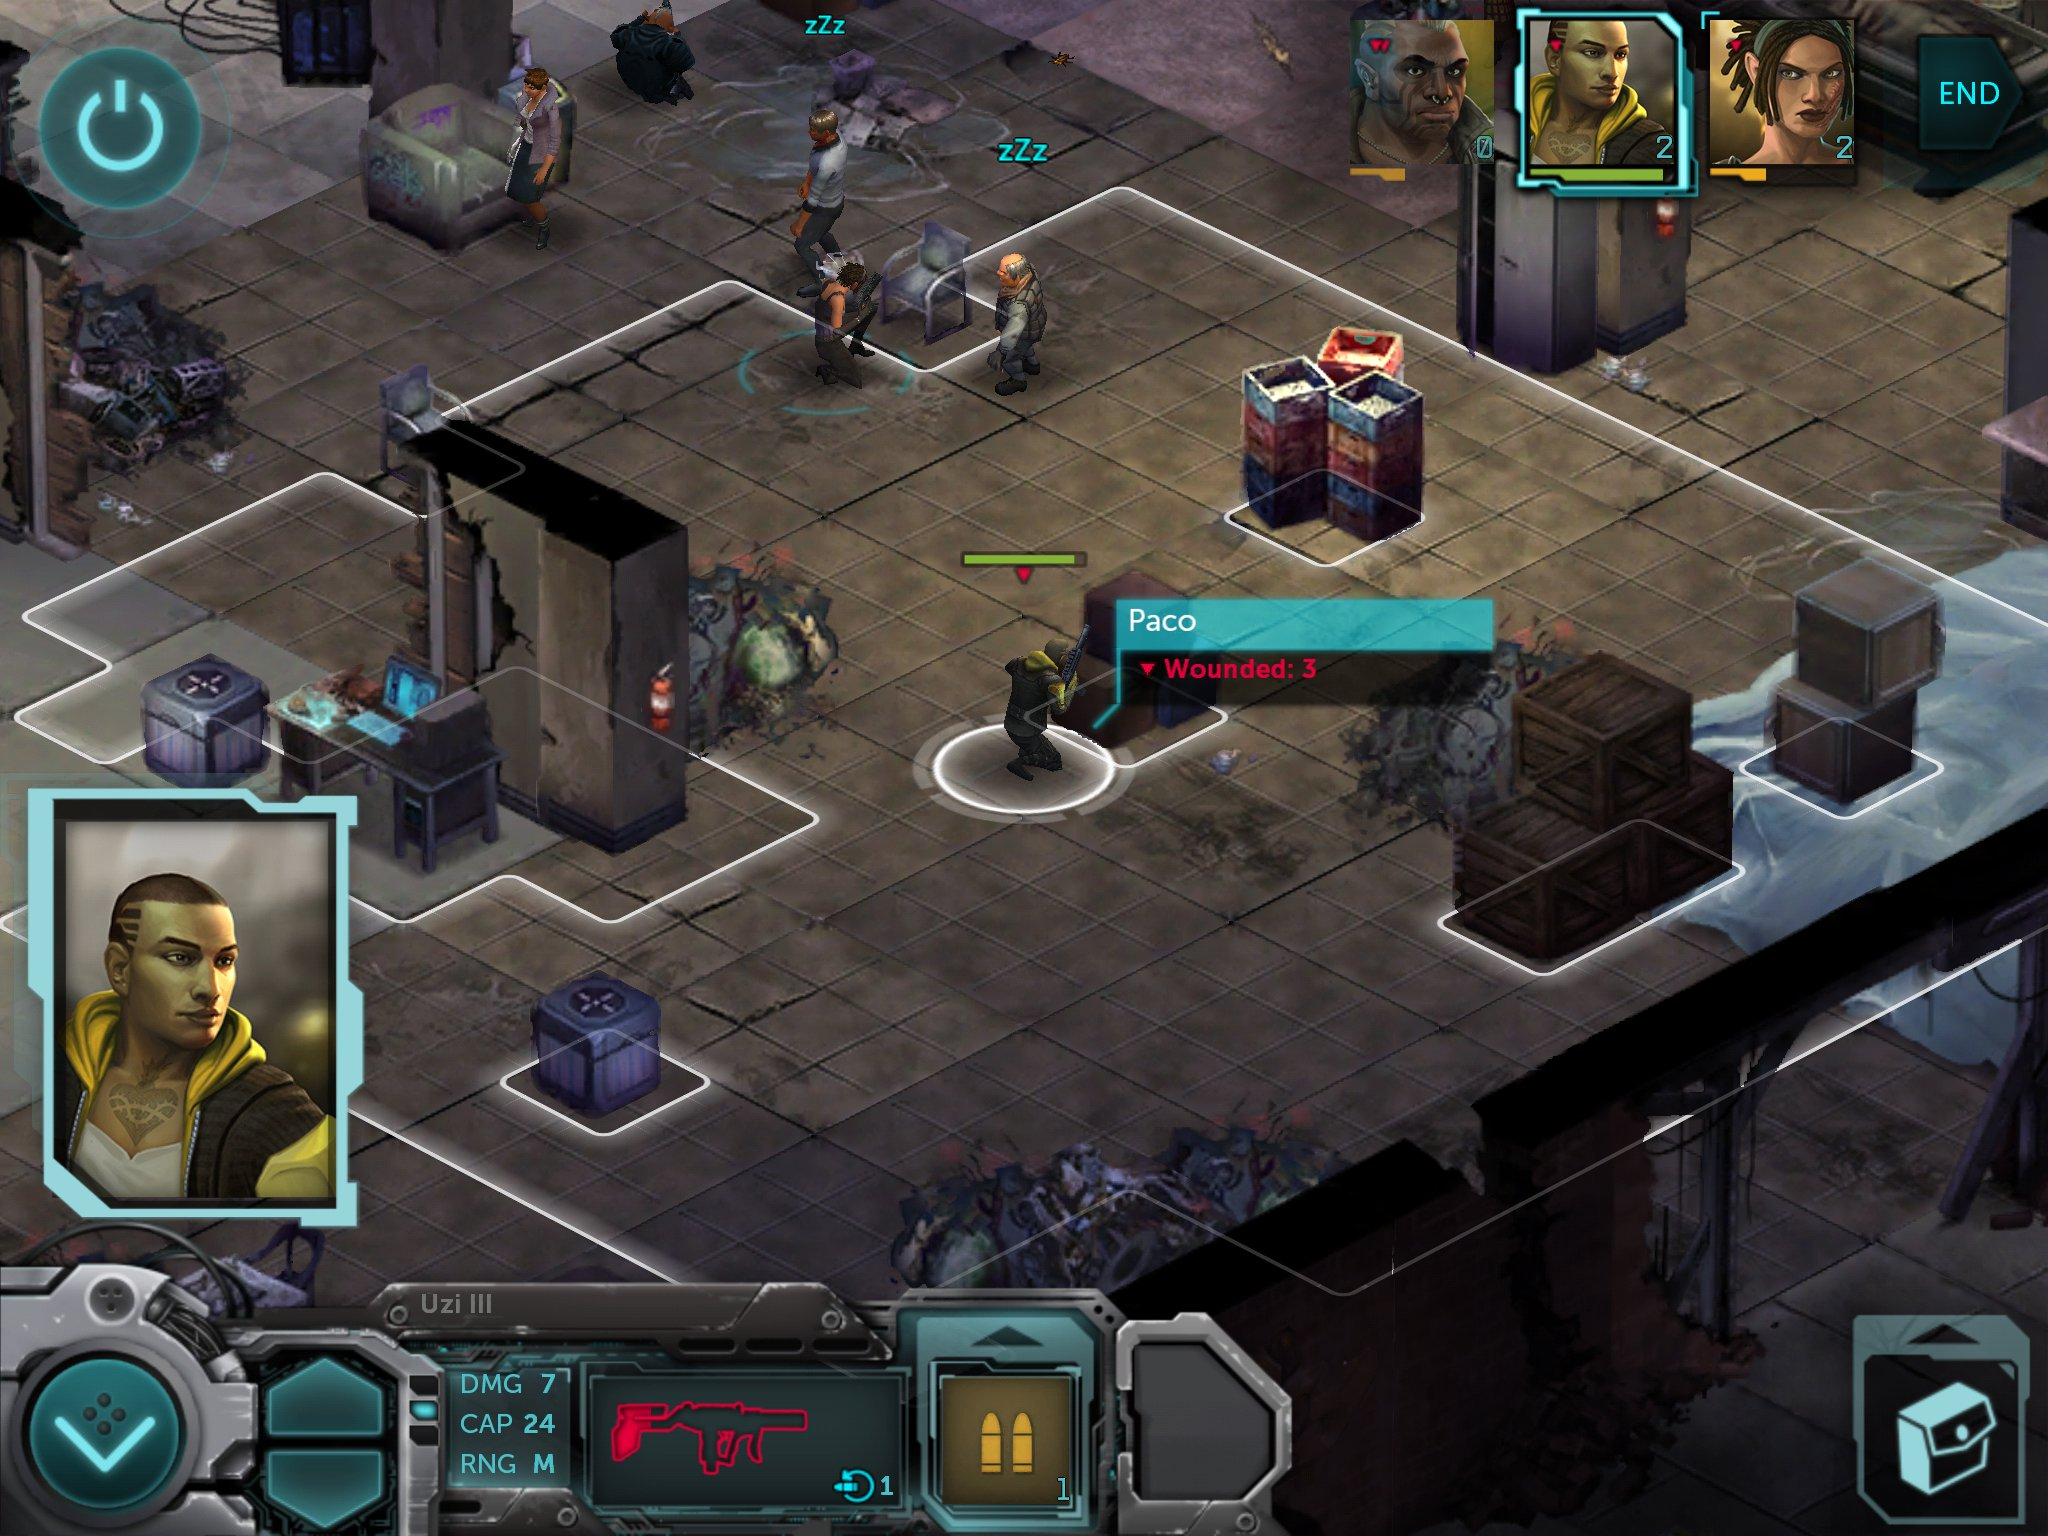 Cyberpunk RPG Shadowrun Returns is just £1.99 / $2.99 on iOS and Android right now